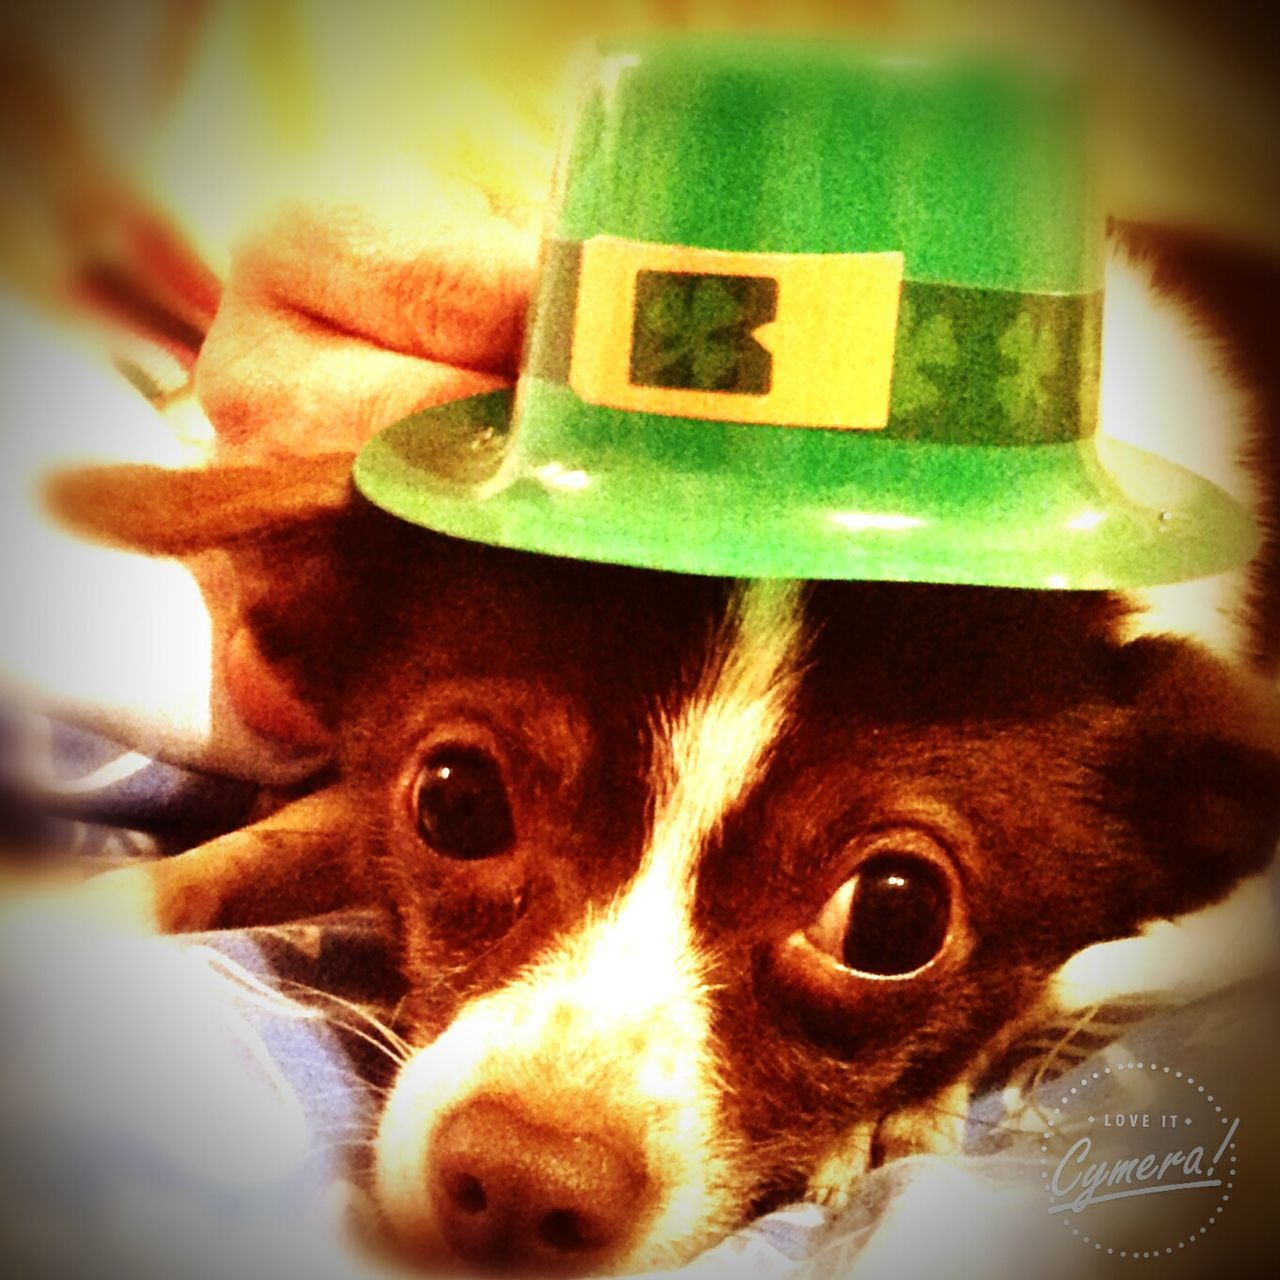 Lucy Goose Jack Russell Pomeranian Mix St Patrick Day Tracy McAfee Dog Life Douglasville Georgia I Love My Dog!  Fightbreastcancer